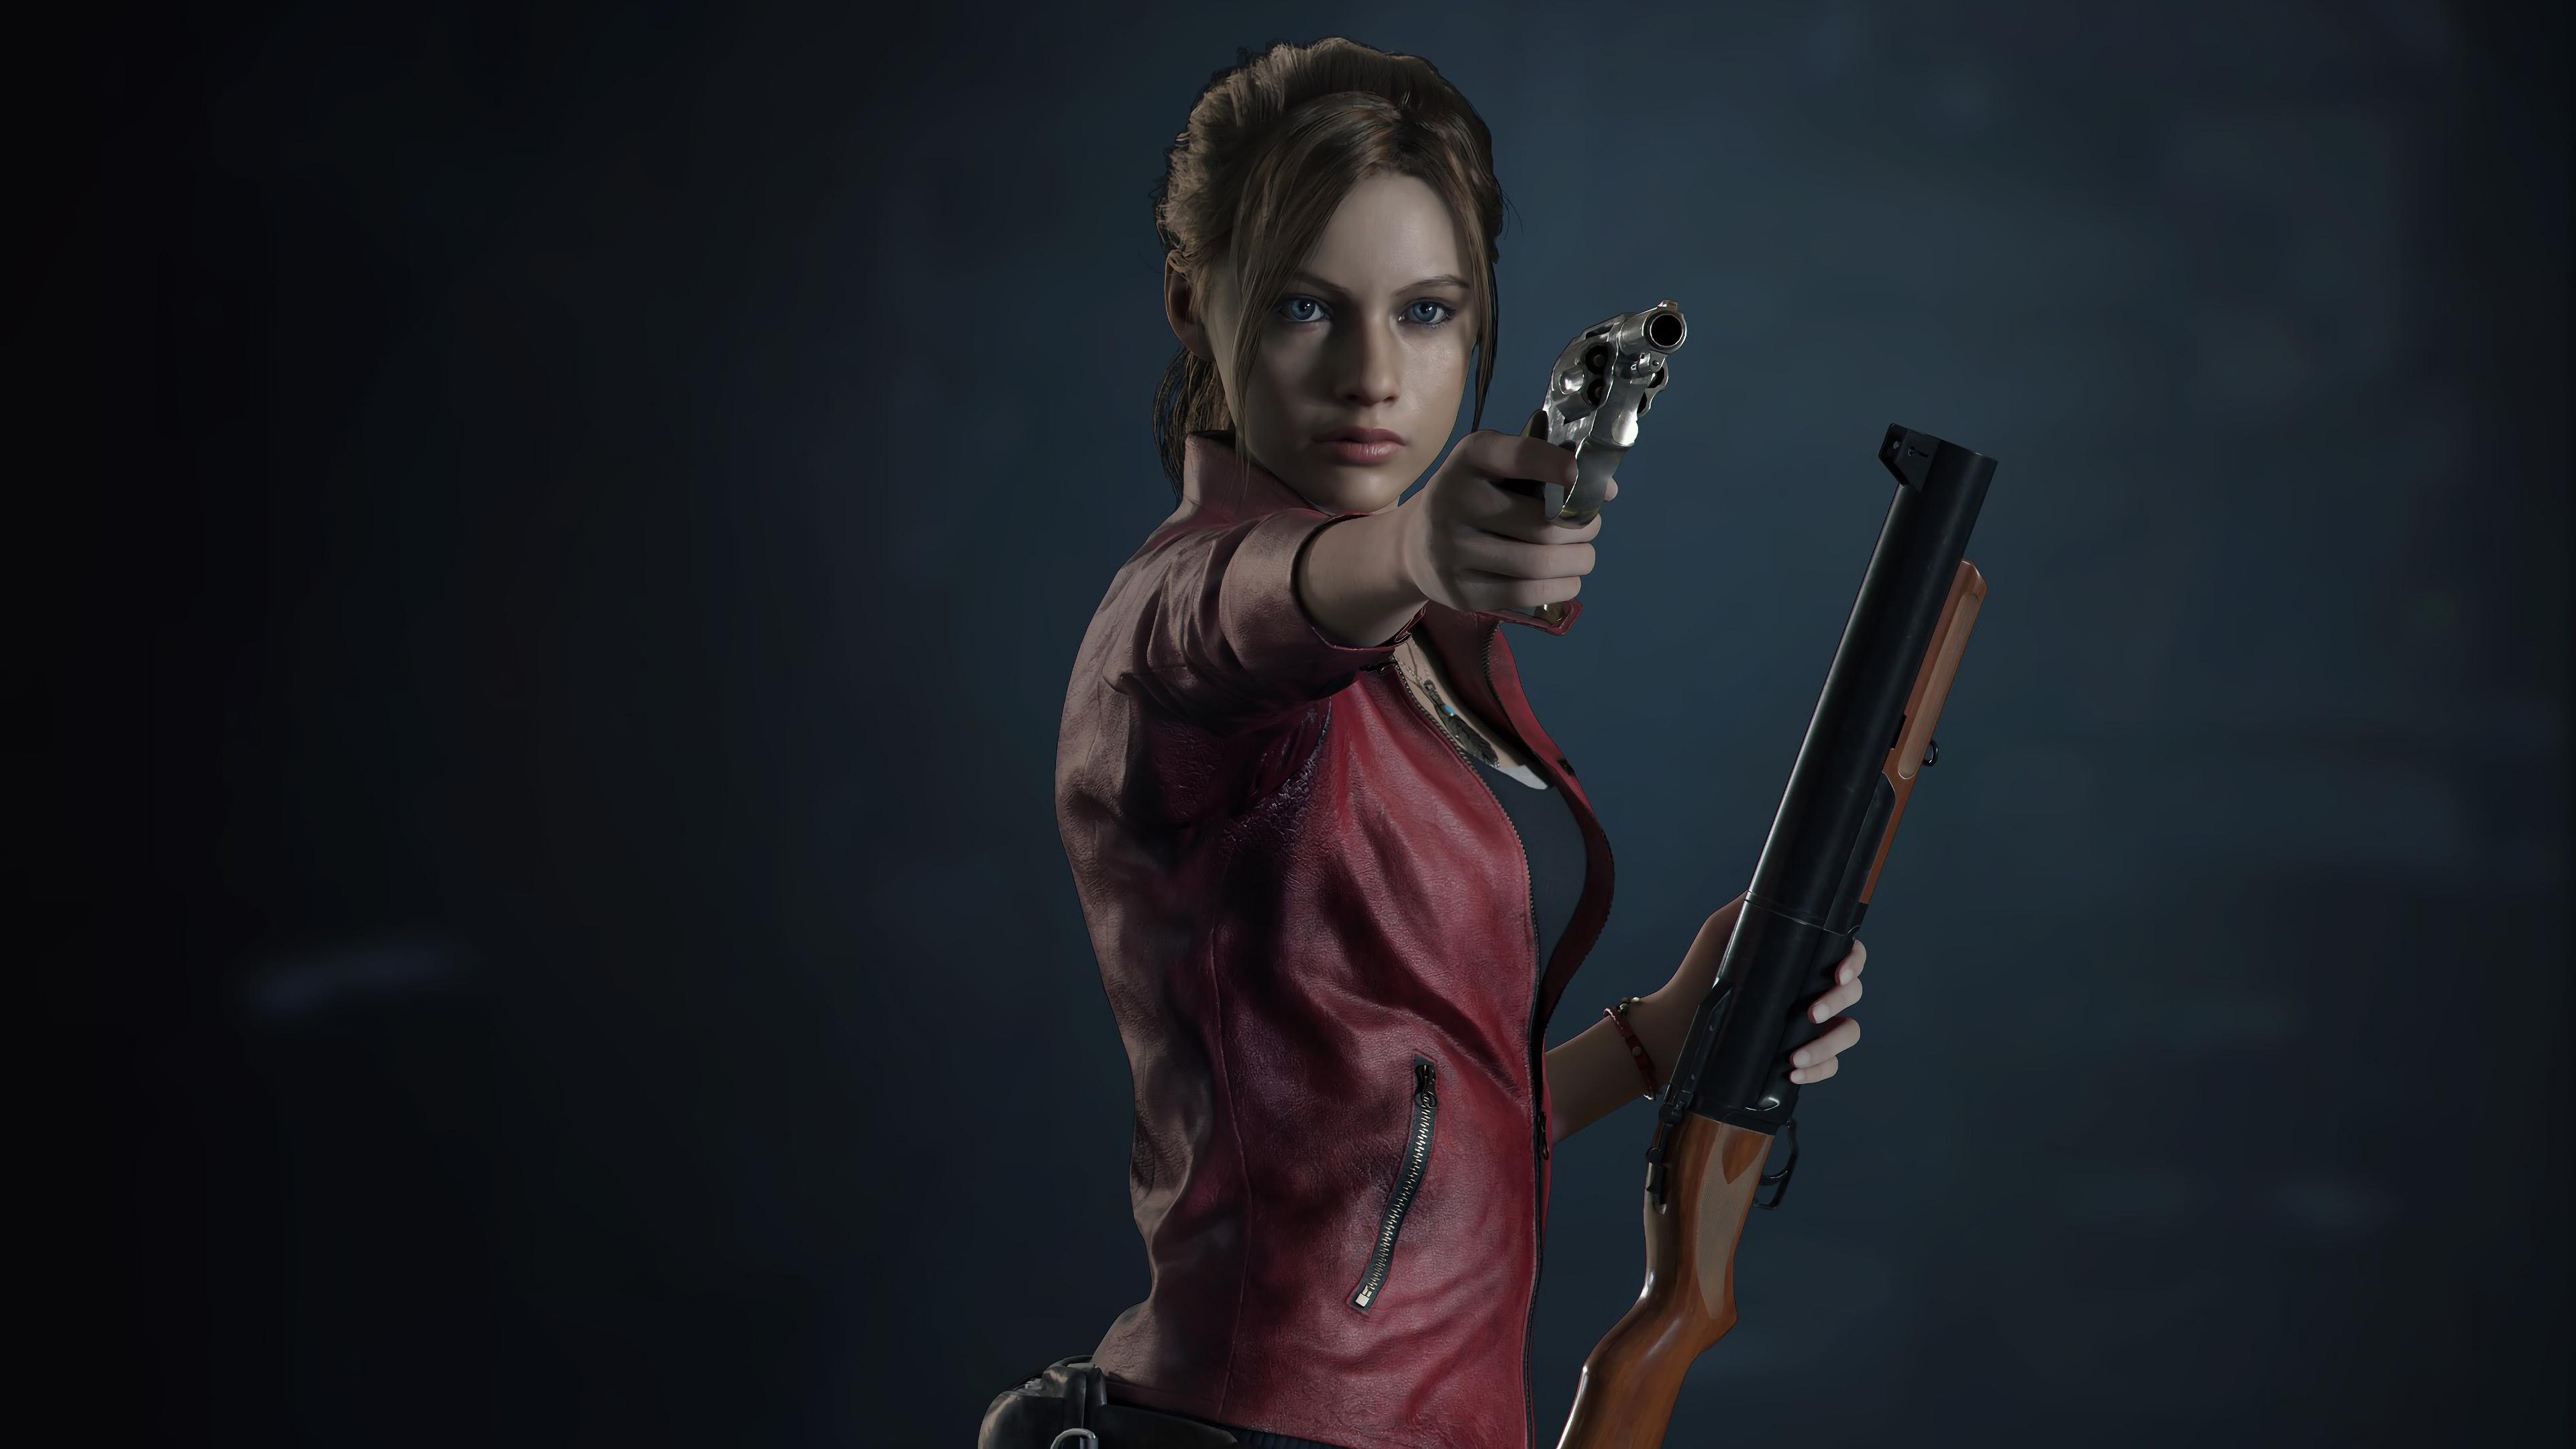 Resident Evil Claire Redfield Wallpaper 73 Images